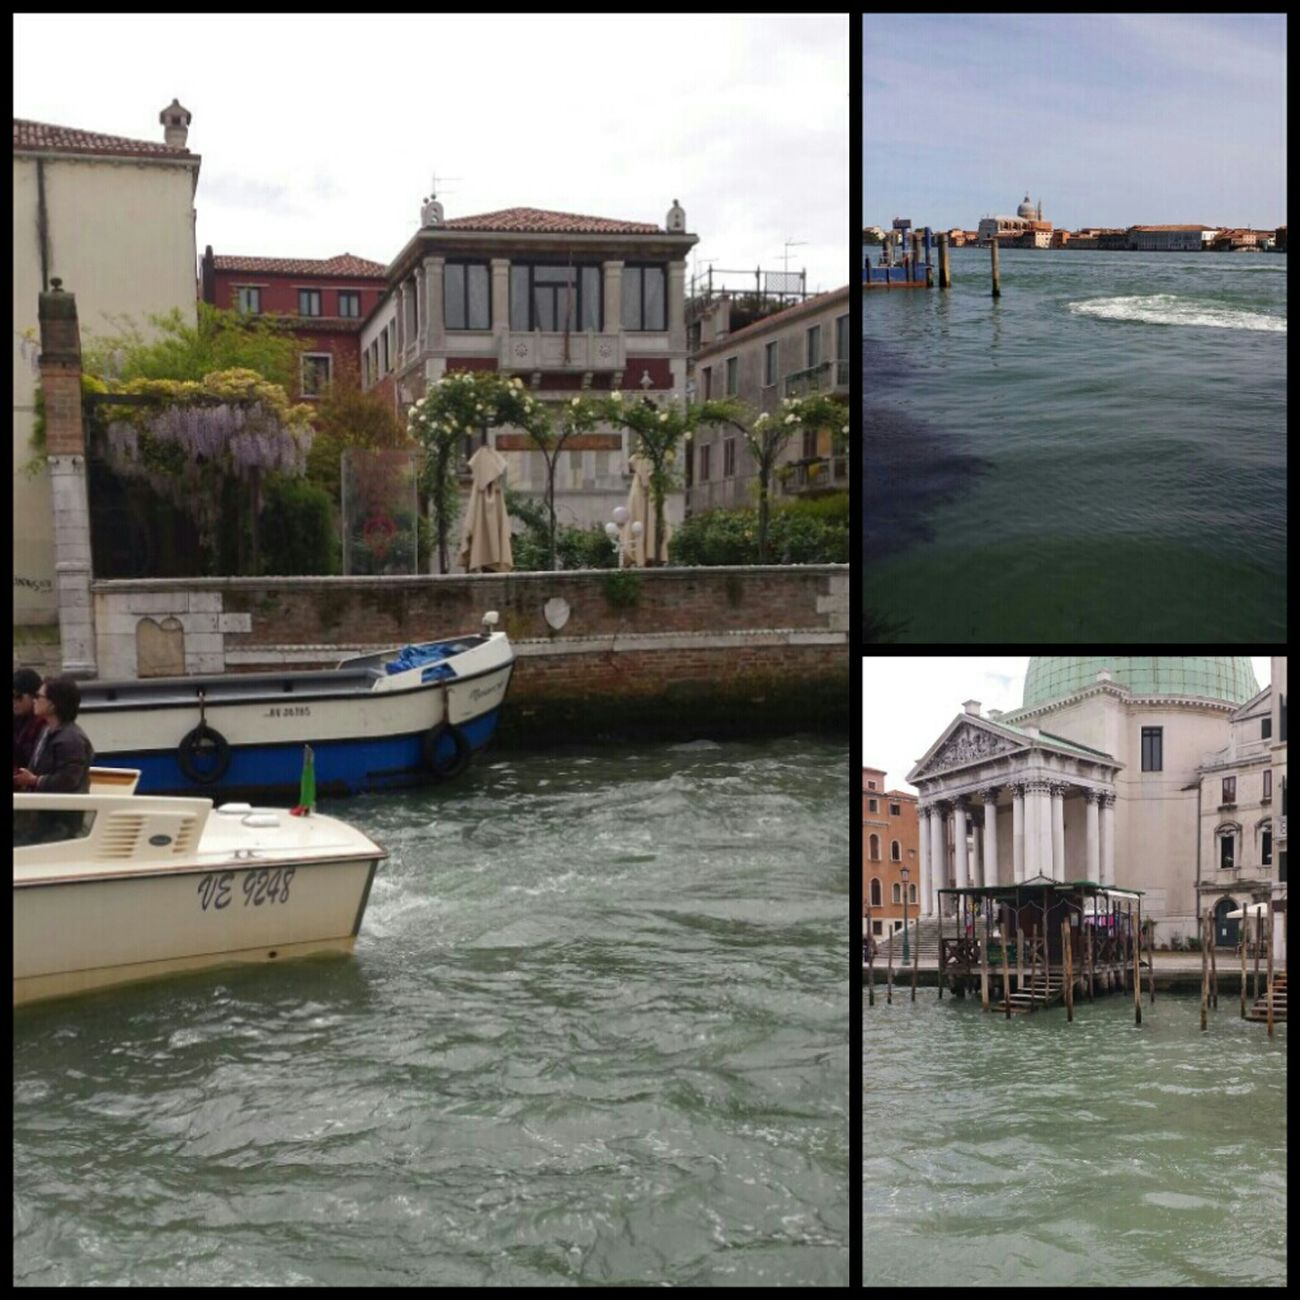 LASTYEAR!! Venezia Wonderful Lastyearmemory Thiscity Amazing Day Memories Awesome Love This